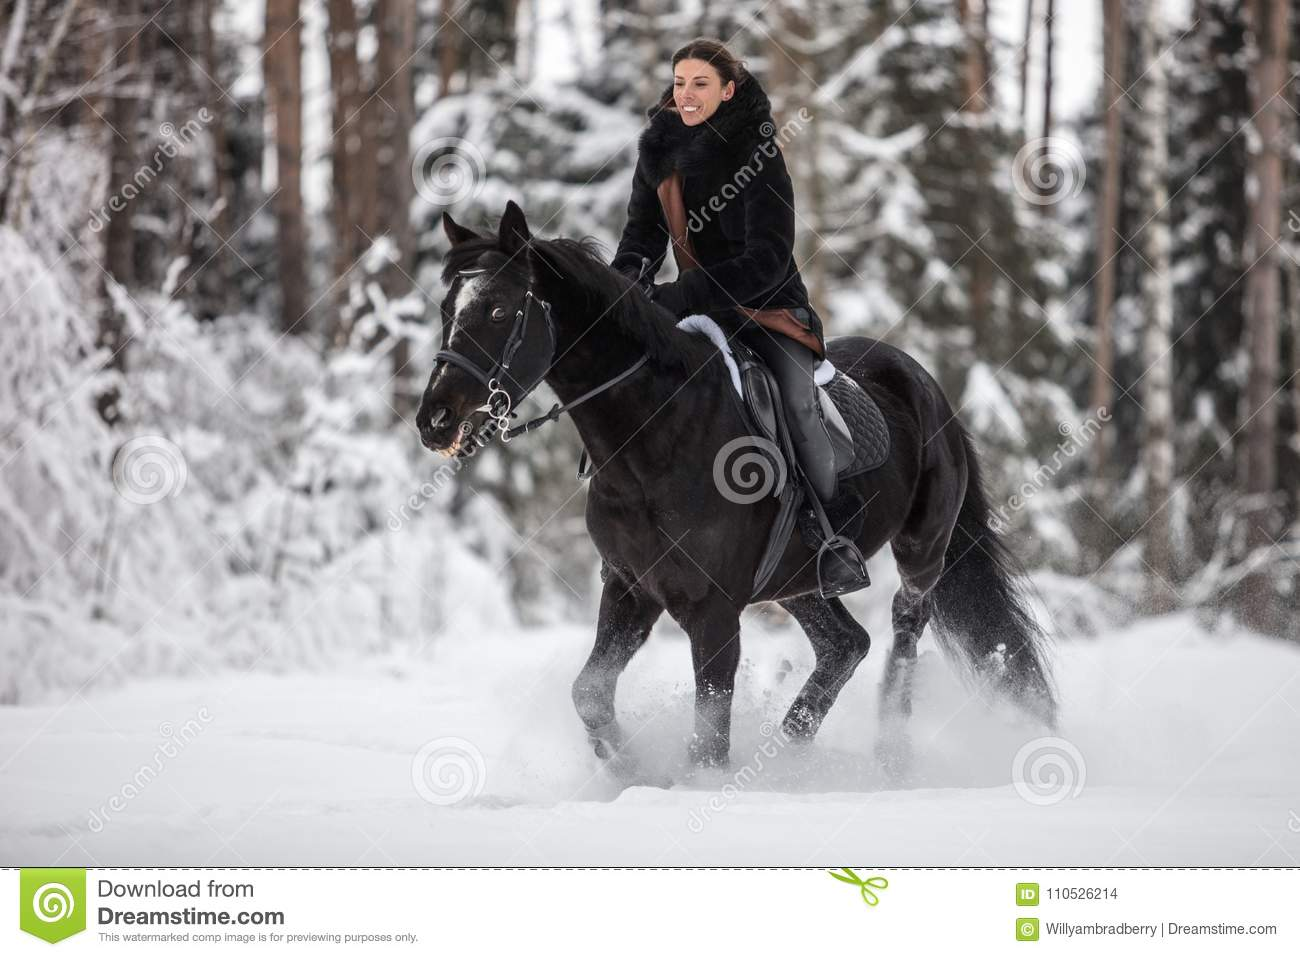 Black Horse Running In Snow On Winter Background Stock Photo Image Of Snow Horse 110526214